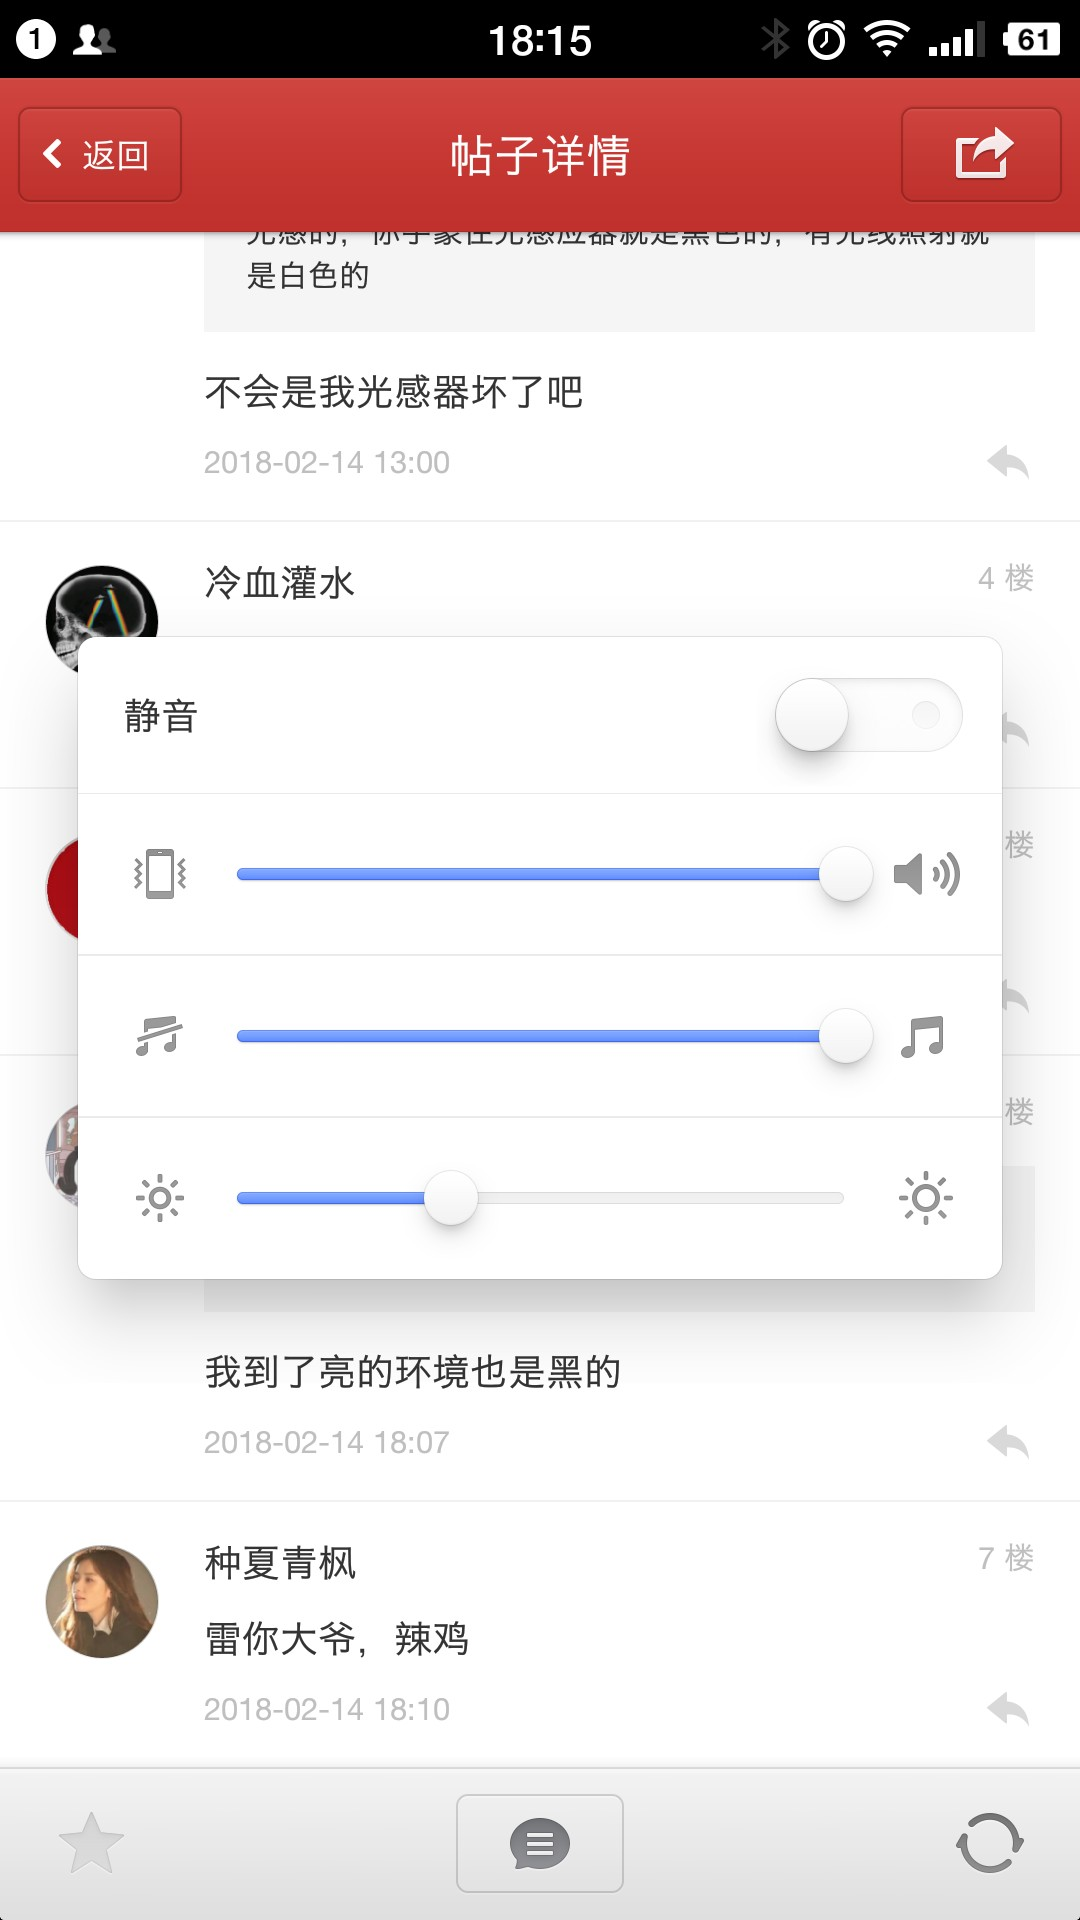 Screenshot_2018-02-14-18-15-58-471_??????.png